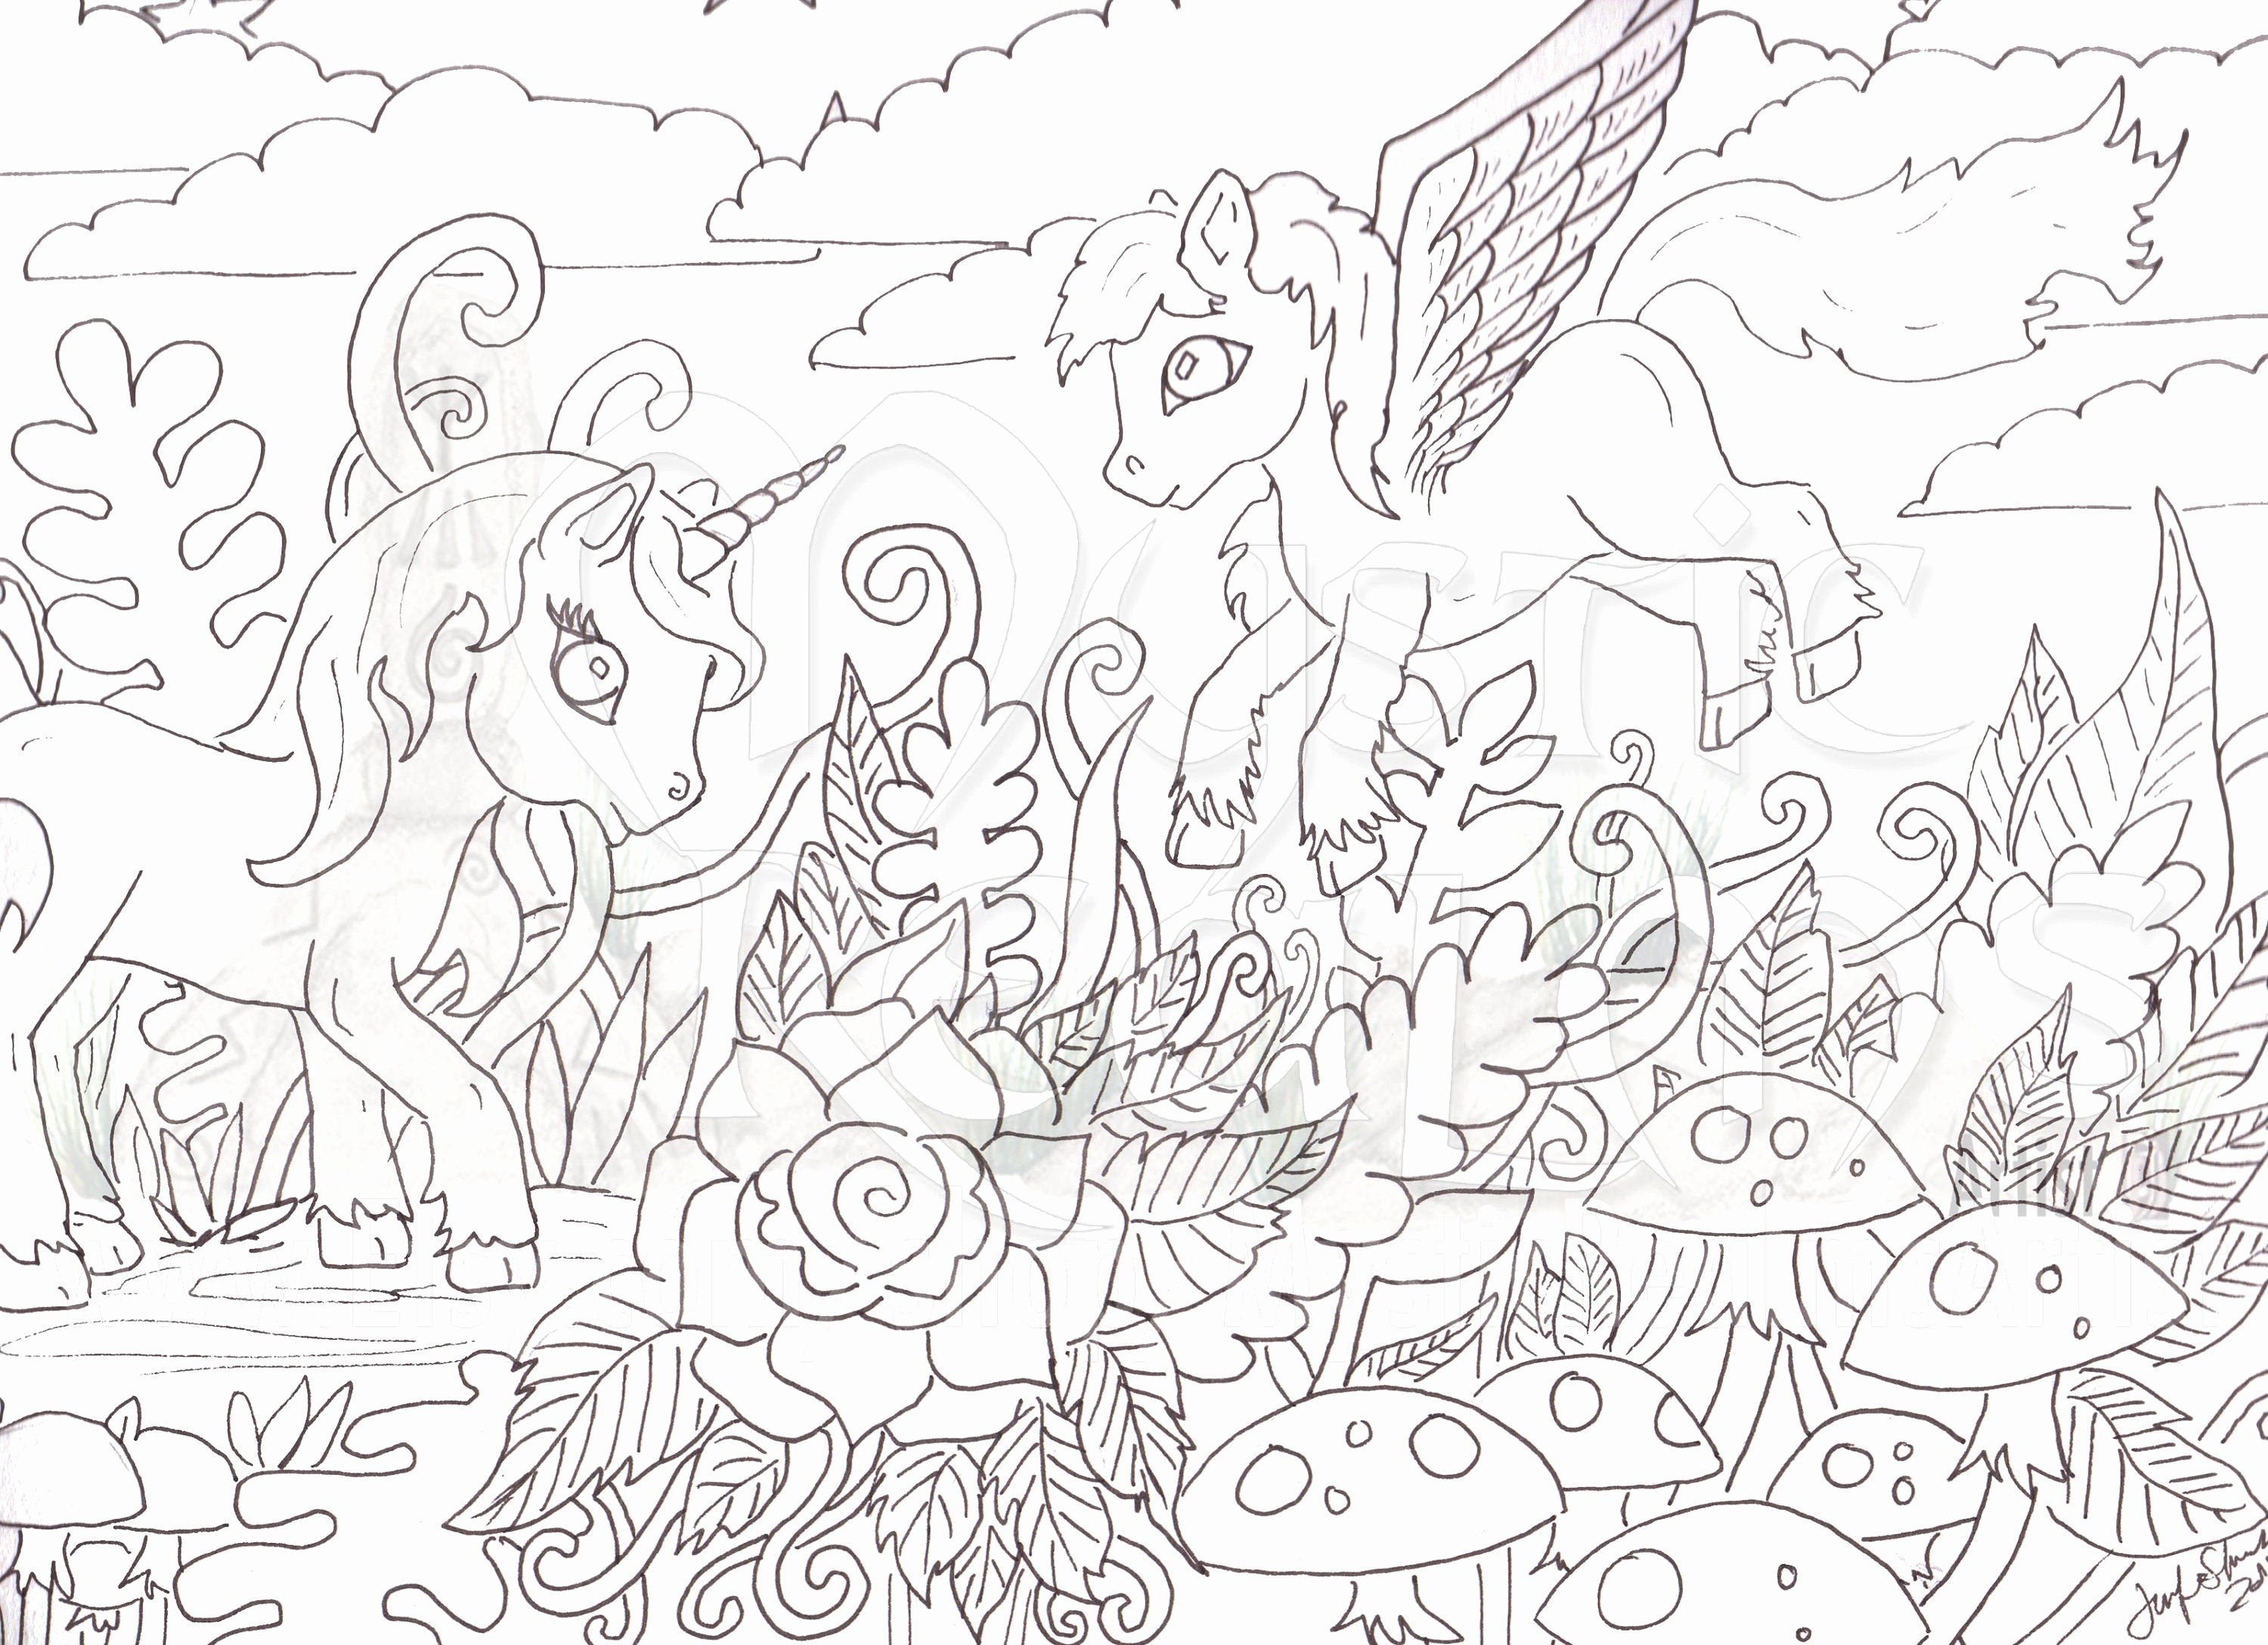 Cute Narwhal Coloring Page Elegant Pegasus Unicorn Unicorn Art Unicorn Coloring Page Coloring Page Unicorn Big Eyes Fantasy Art Di 2020